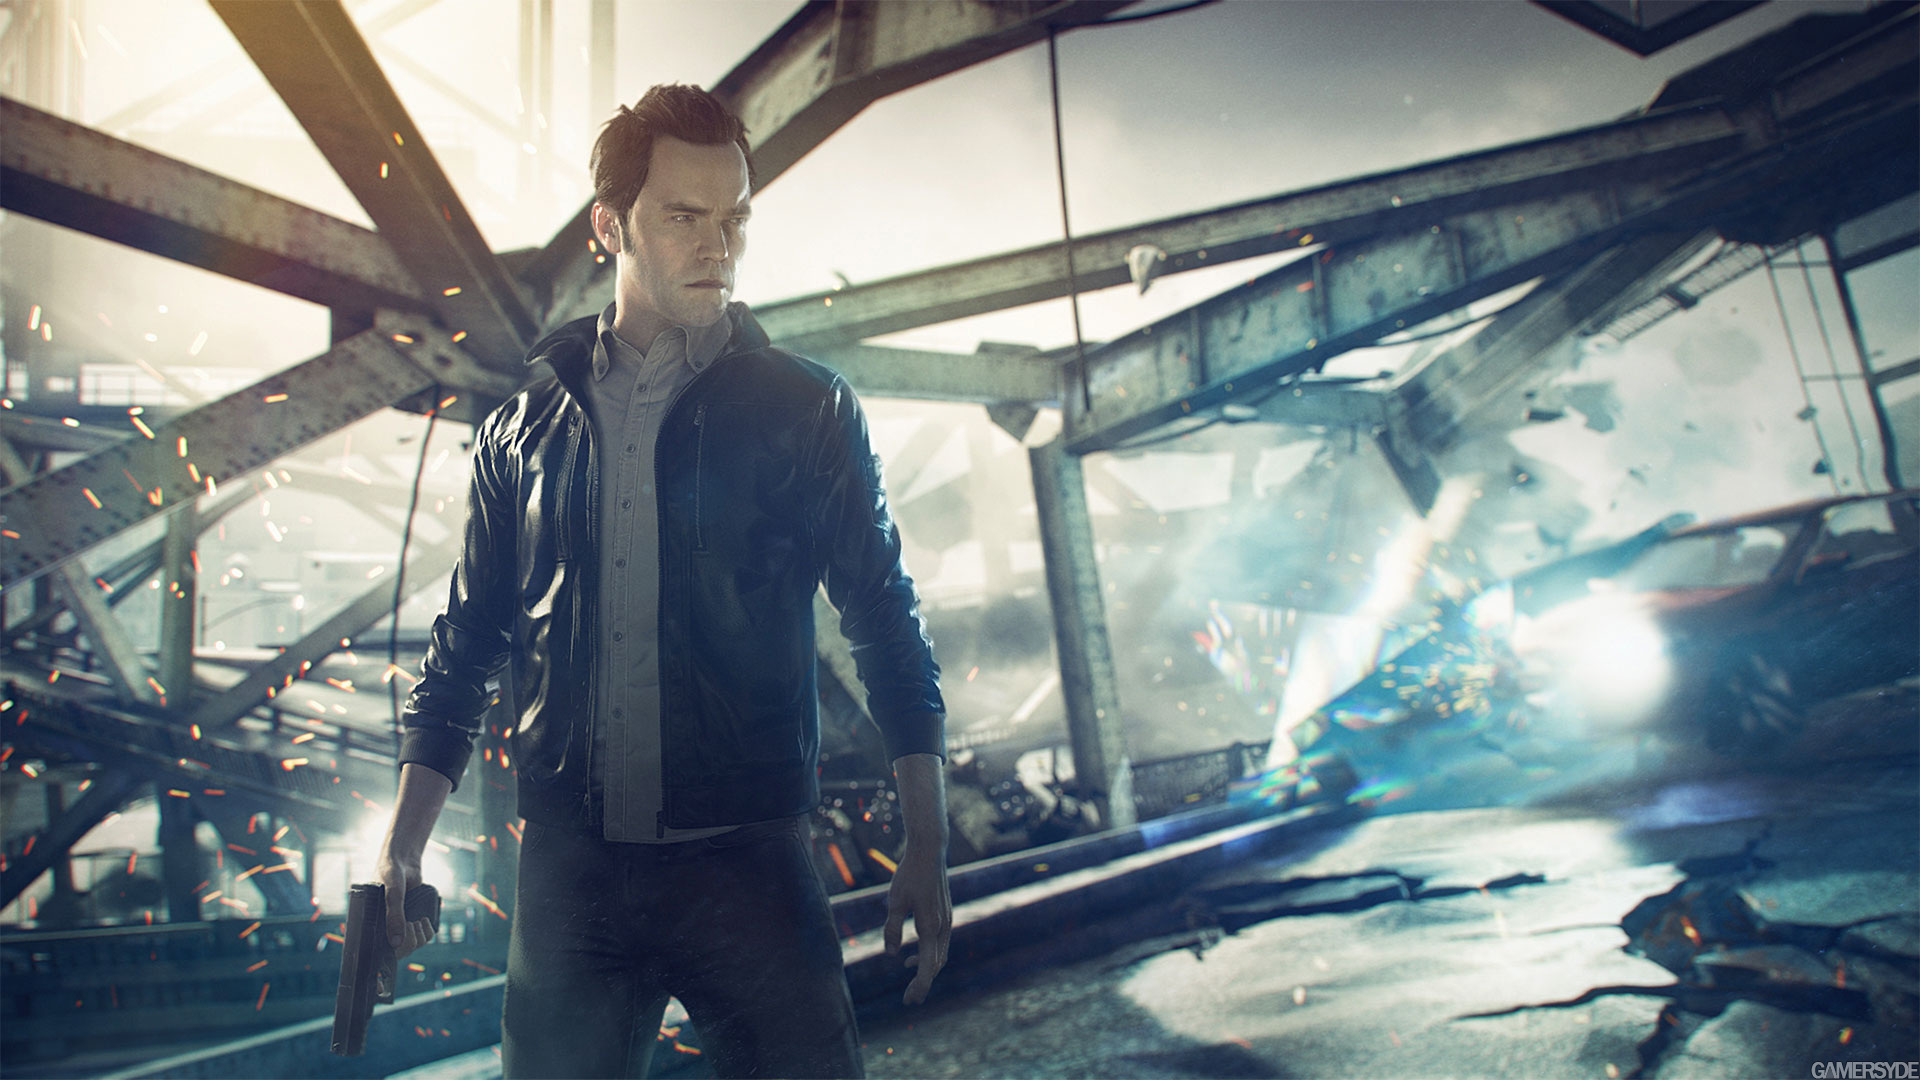 image_quantum_break-22372-2722_0004